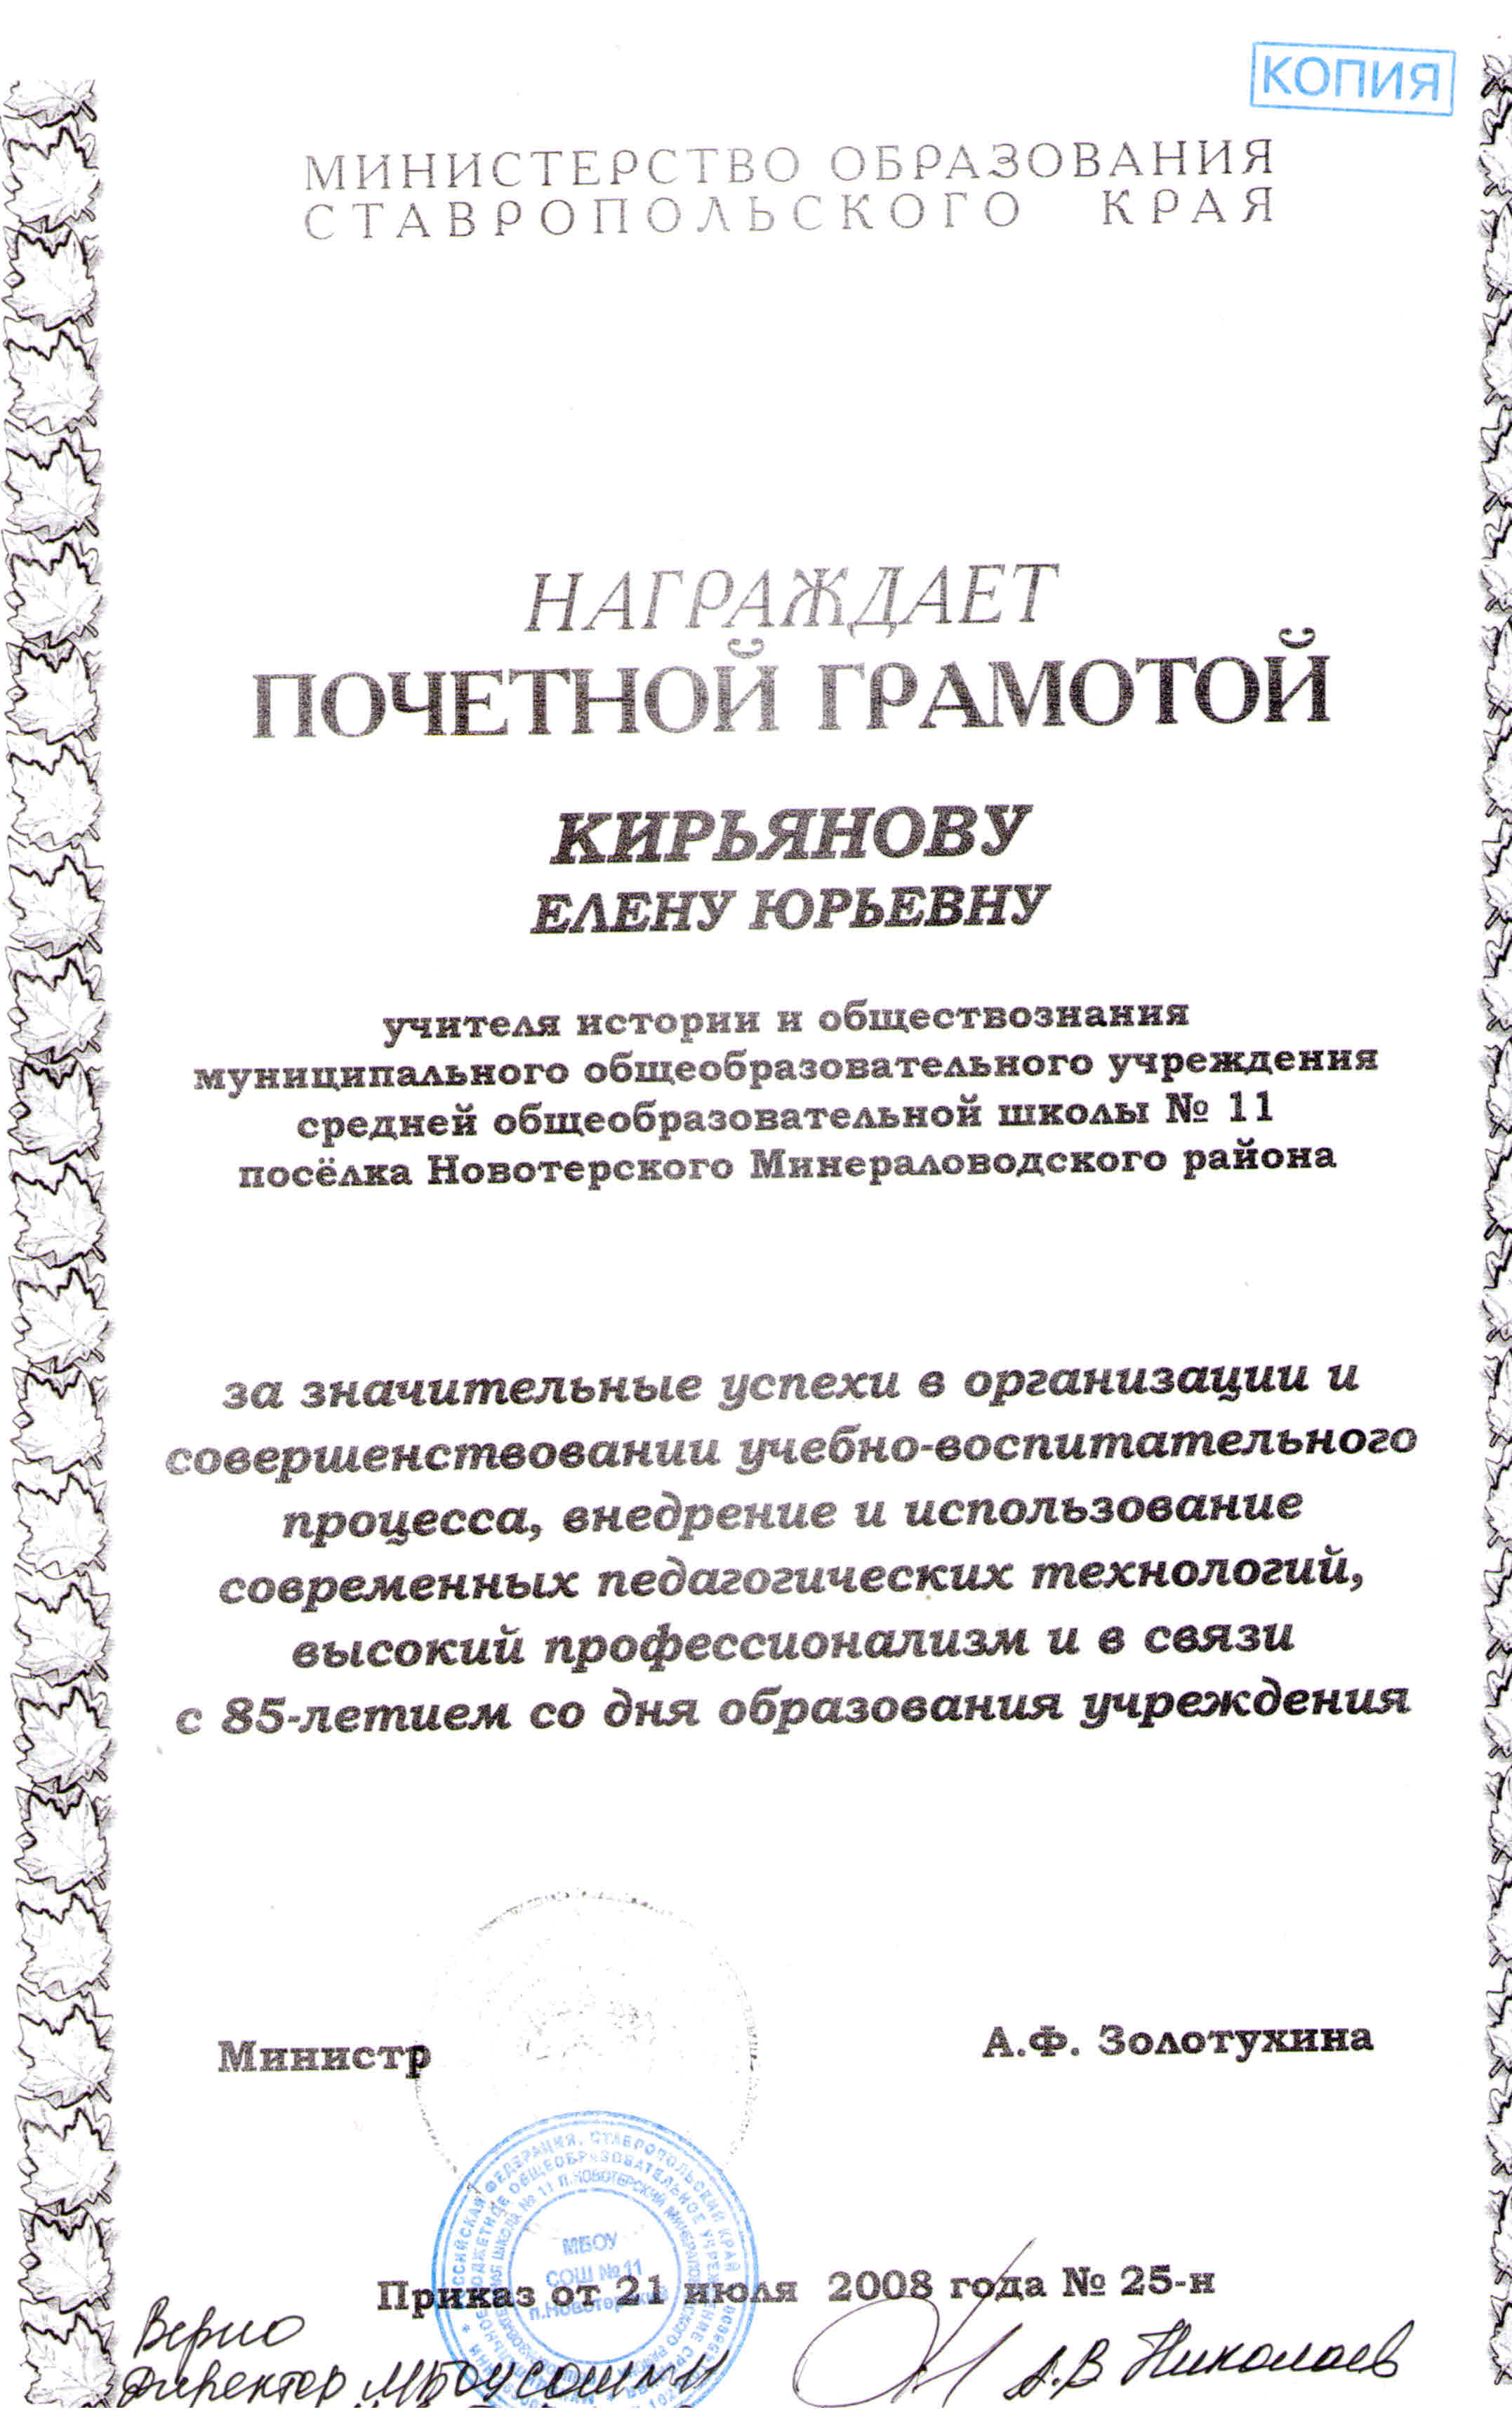 C:\Users\Сергей\Desktop\Document_3.jpg